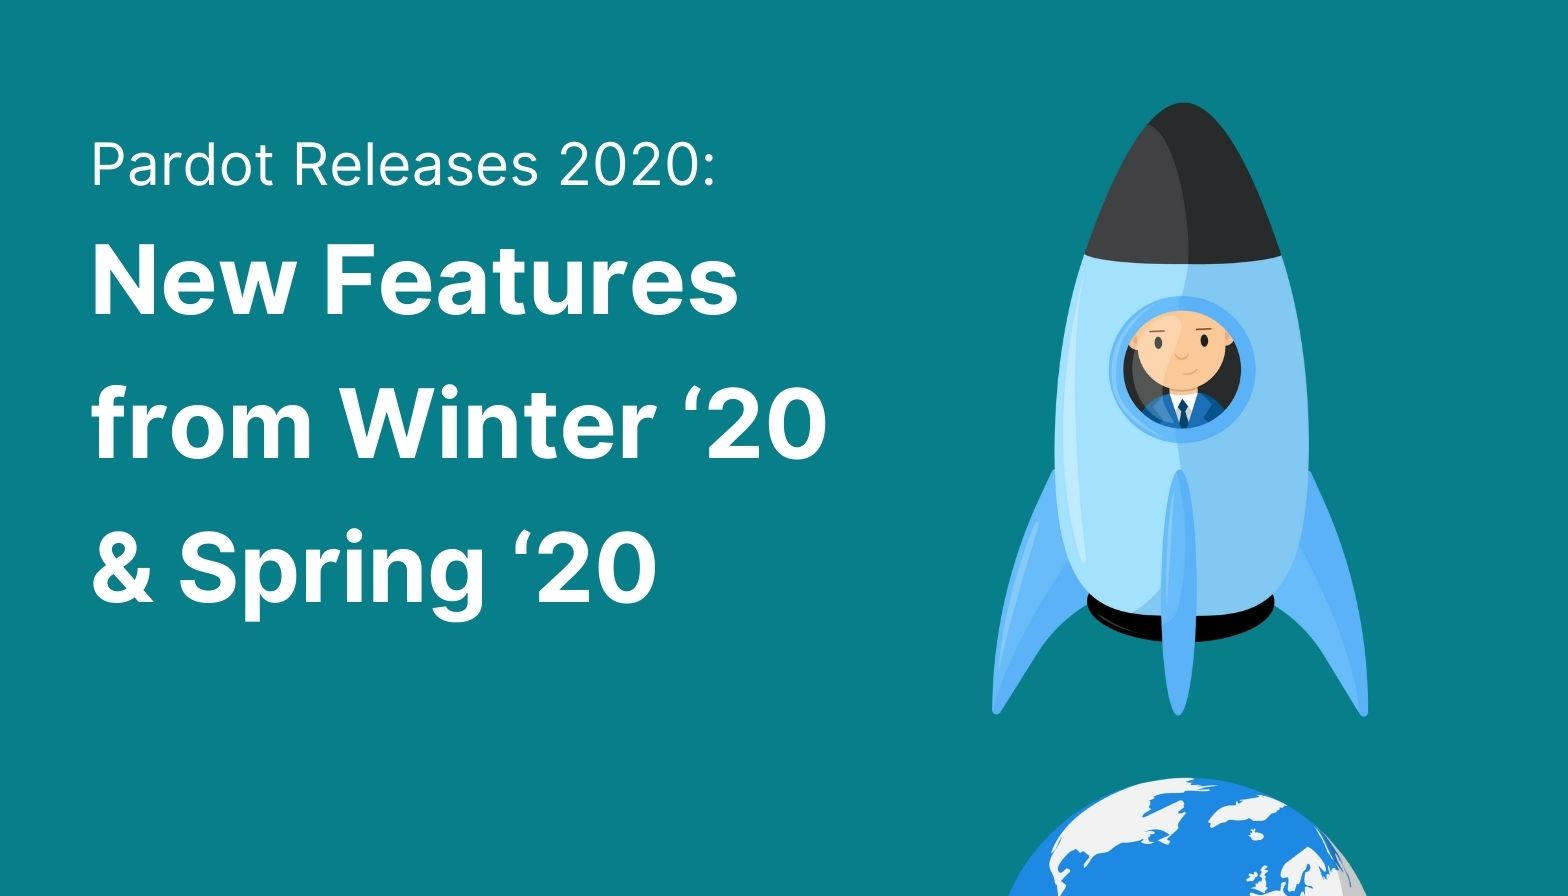 Feature image: Pardot Releases 2020 - New features from Winter'20 and Spring '20